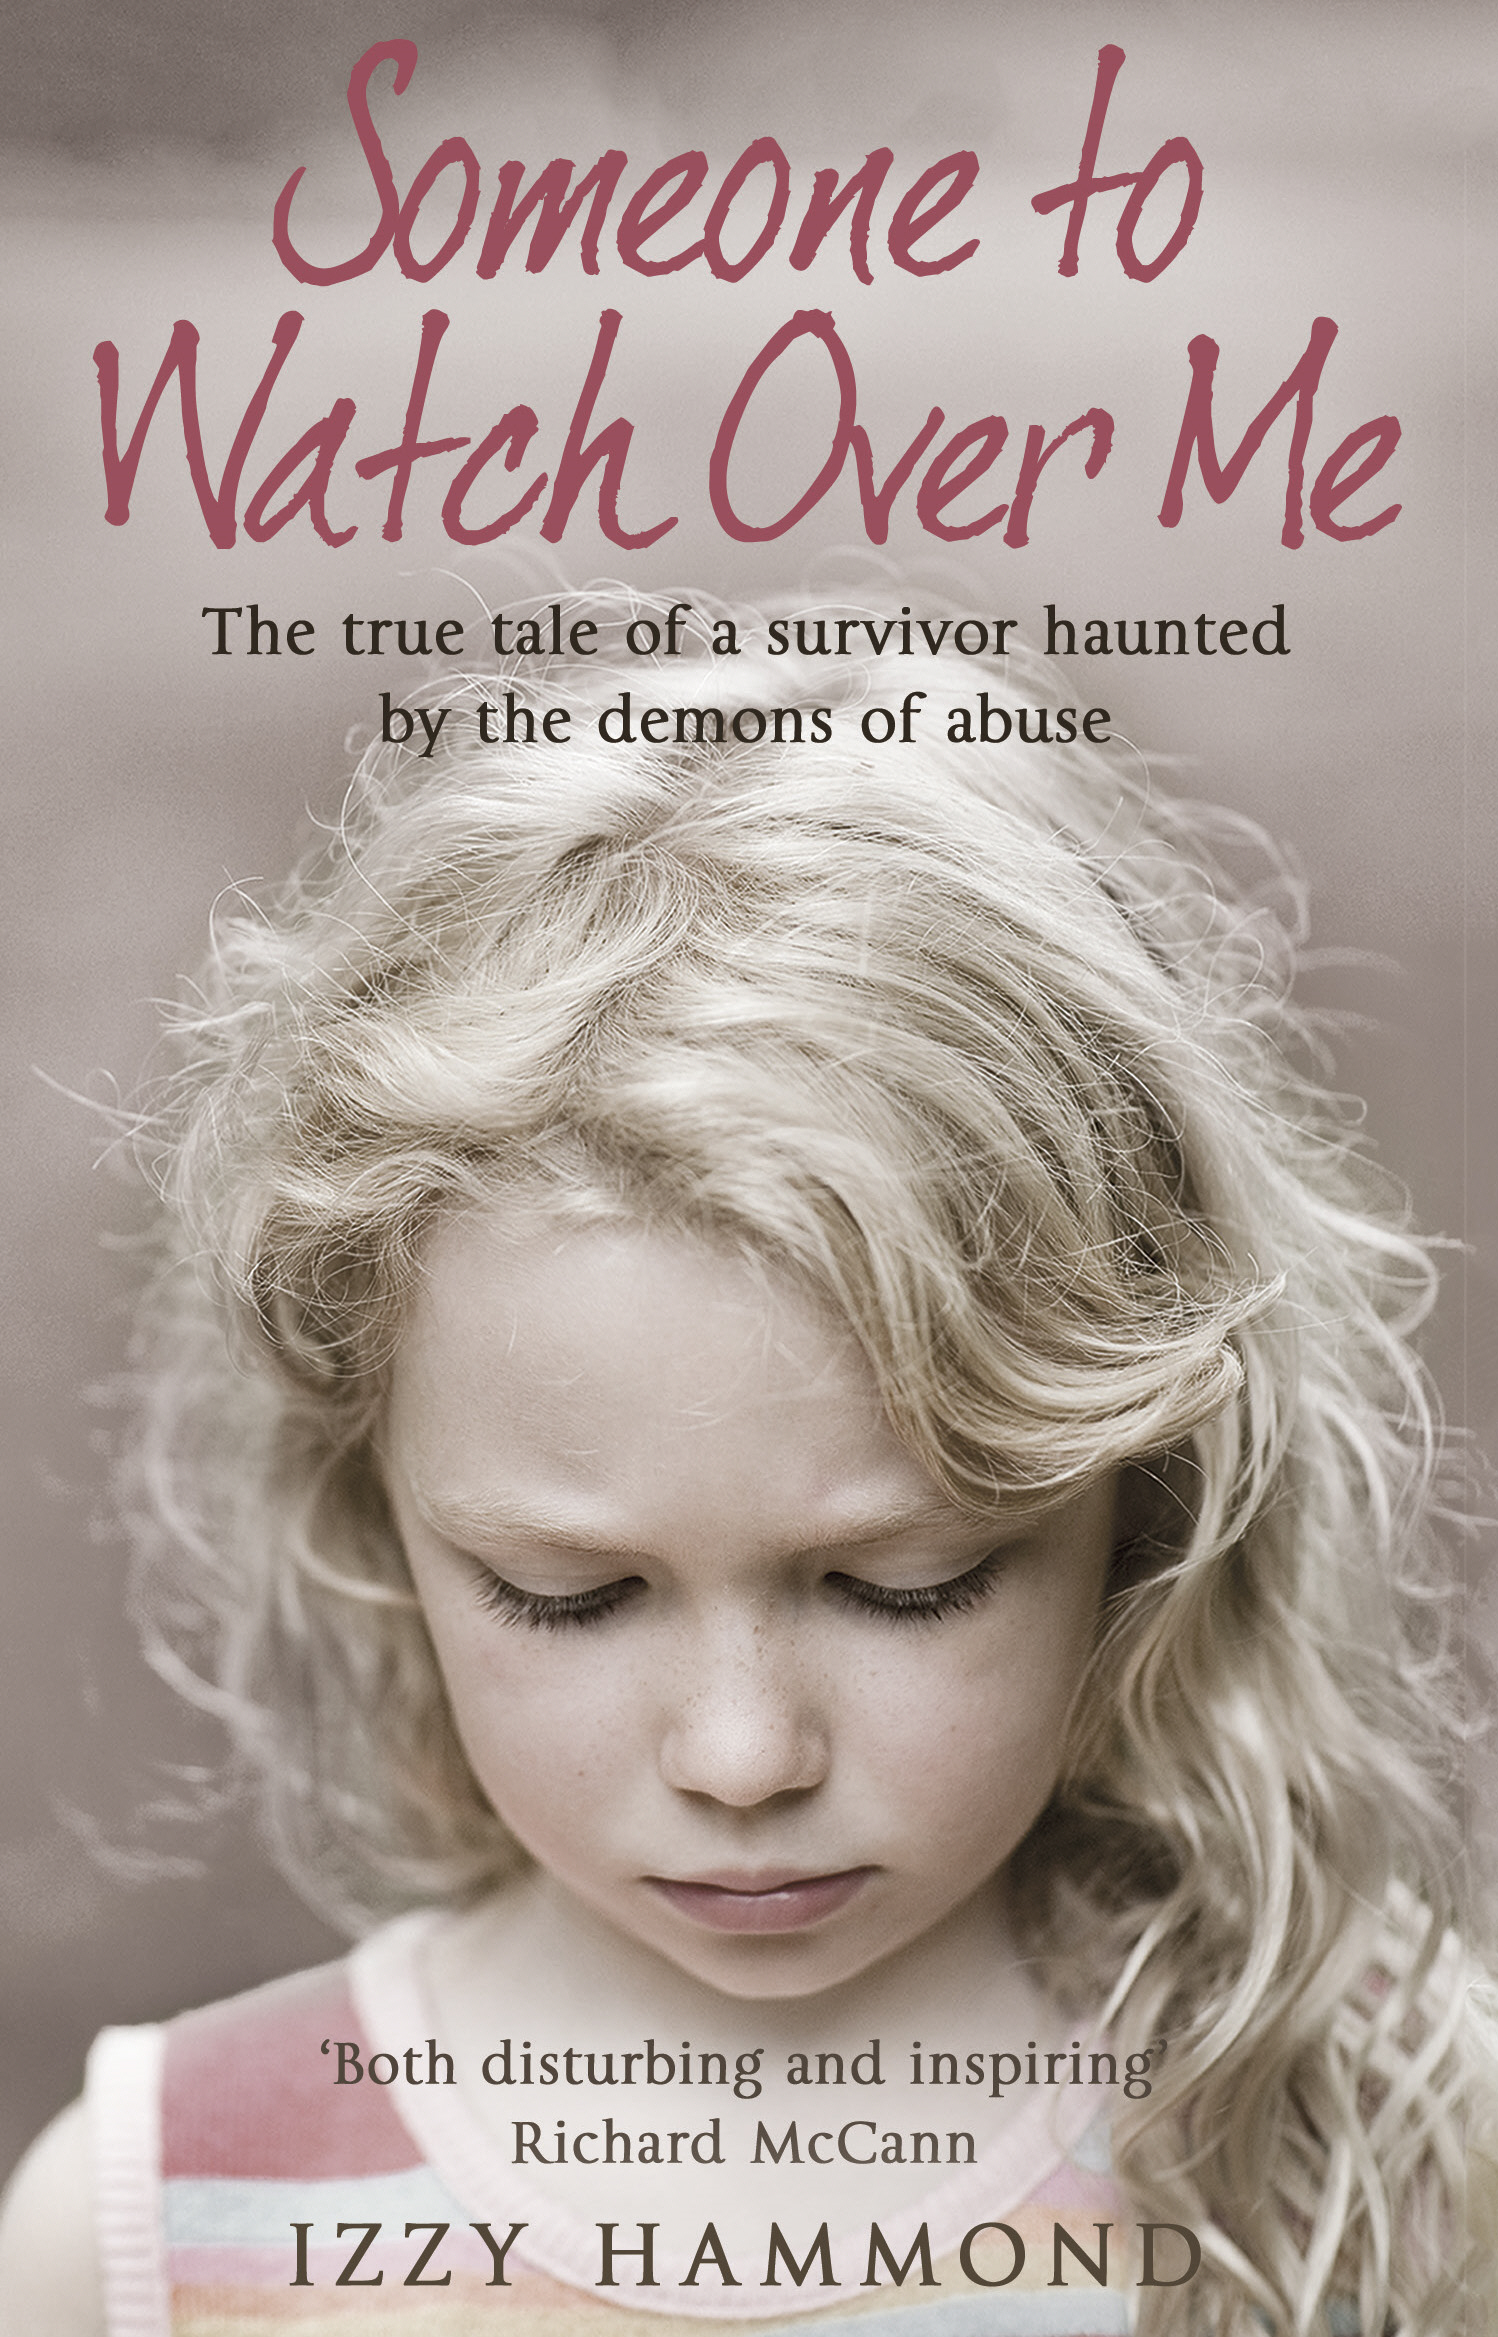 Someone To Watch Over Me The True Tale of a Survivor Haunted by the Demons of Abuse